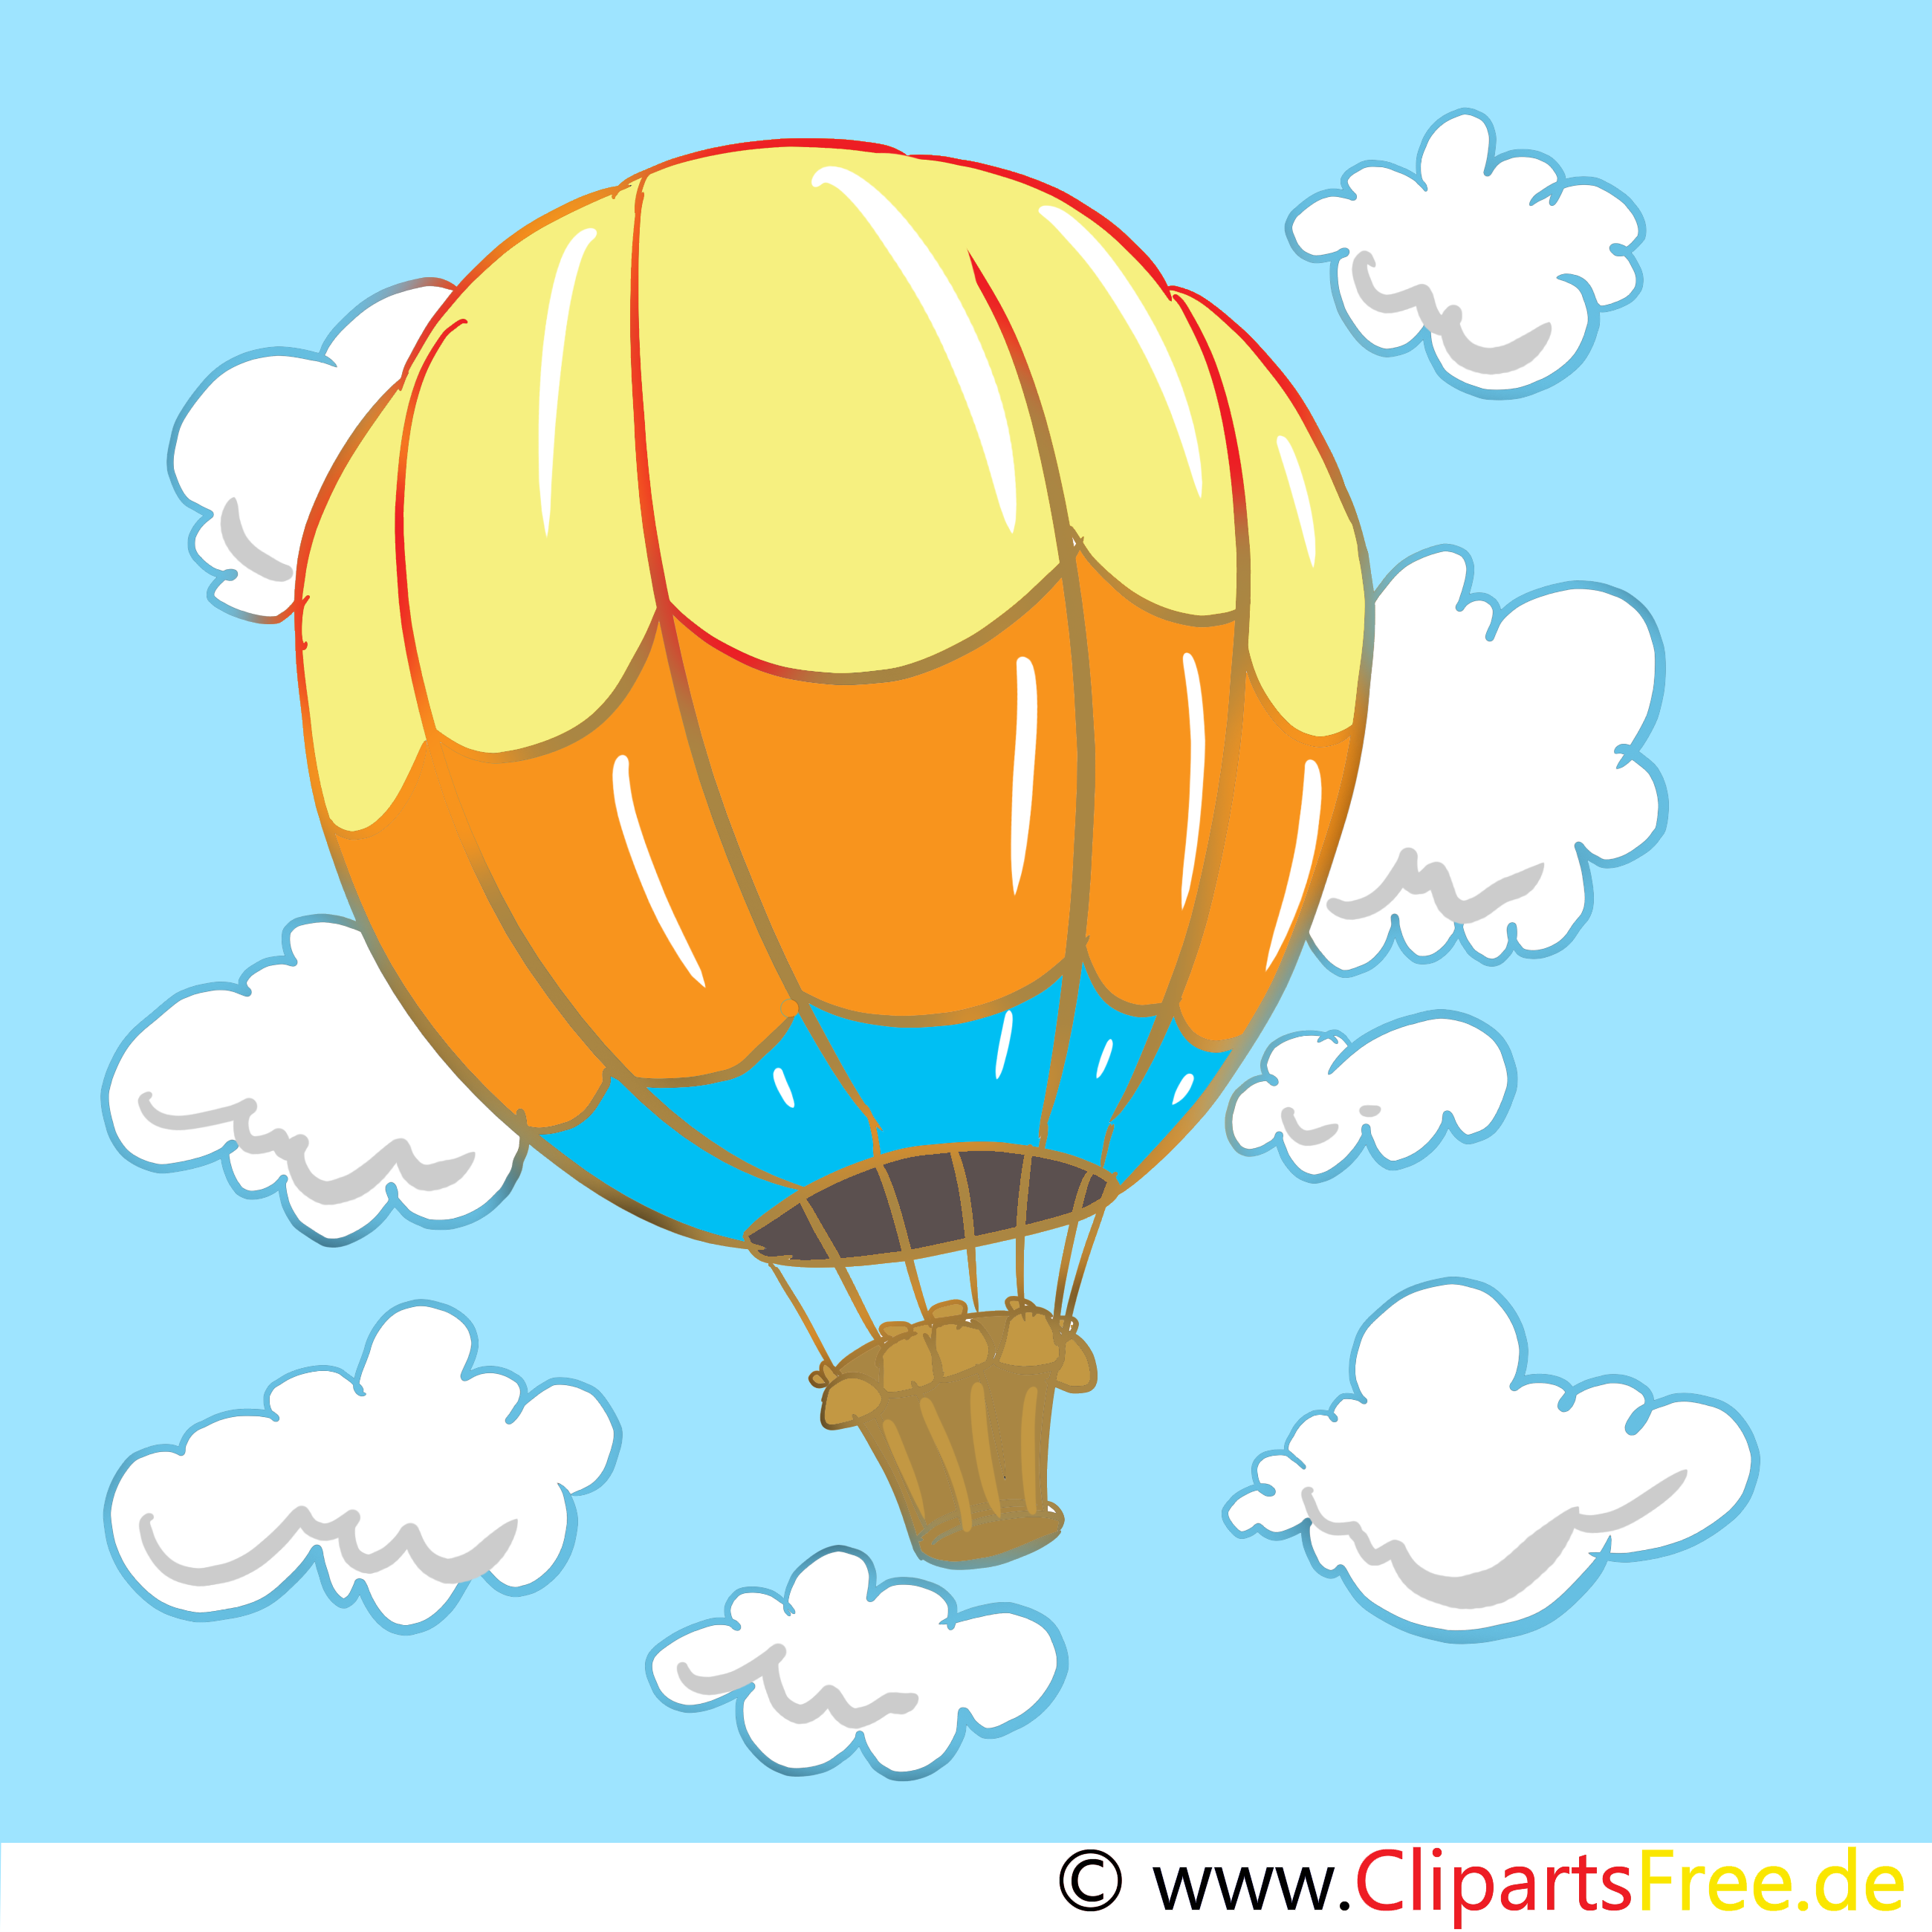 Heißluftballon Image, Clip Art, Cartoon, Bild.